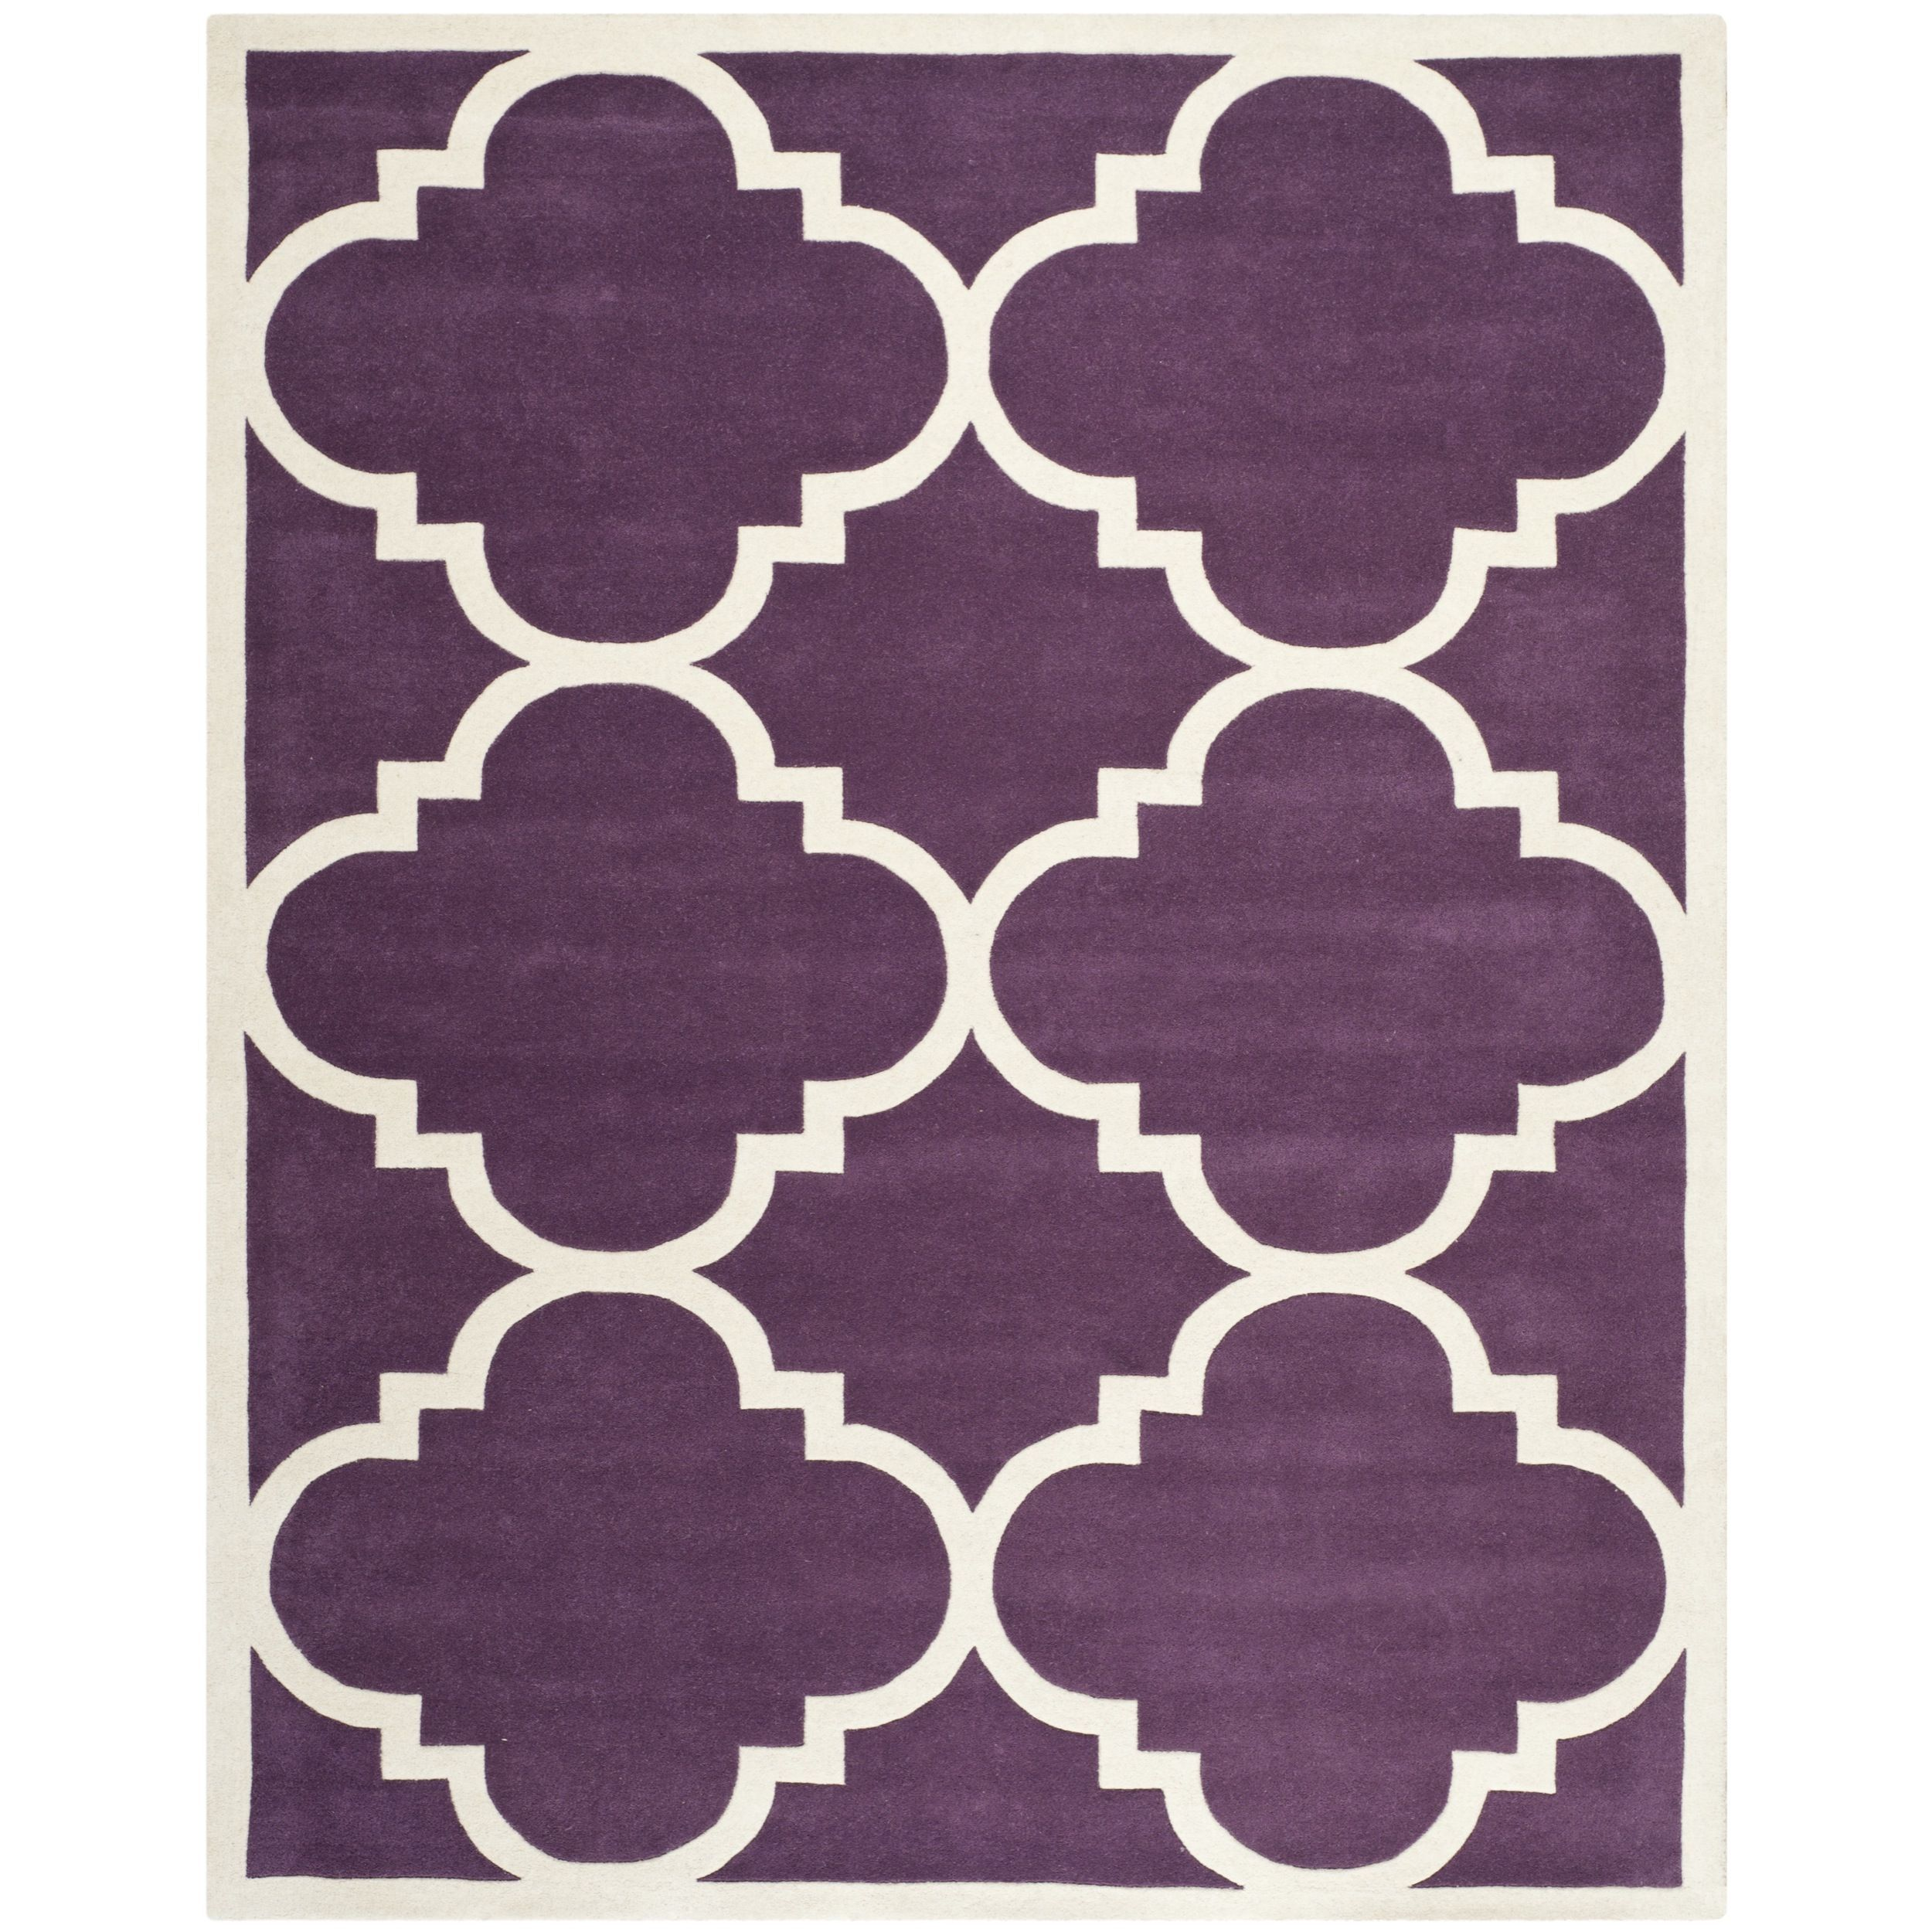 Contemporary safavieh handmade moroccan chatham purple wool rug